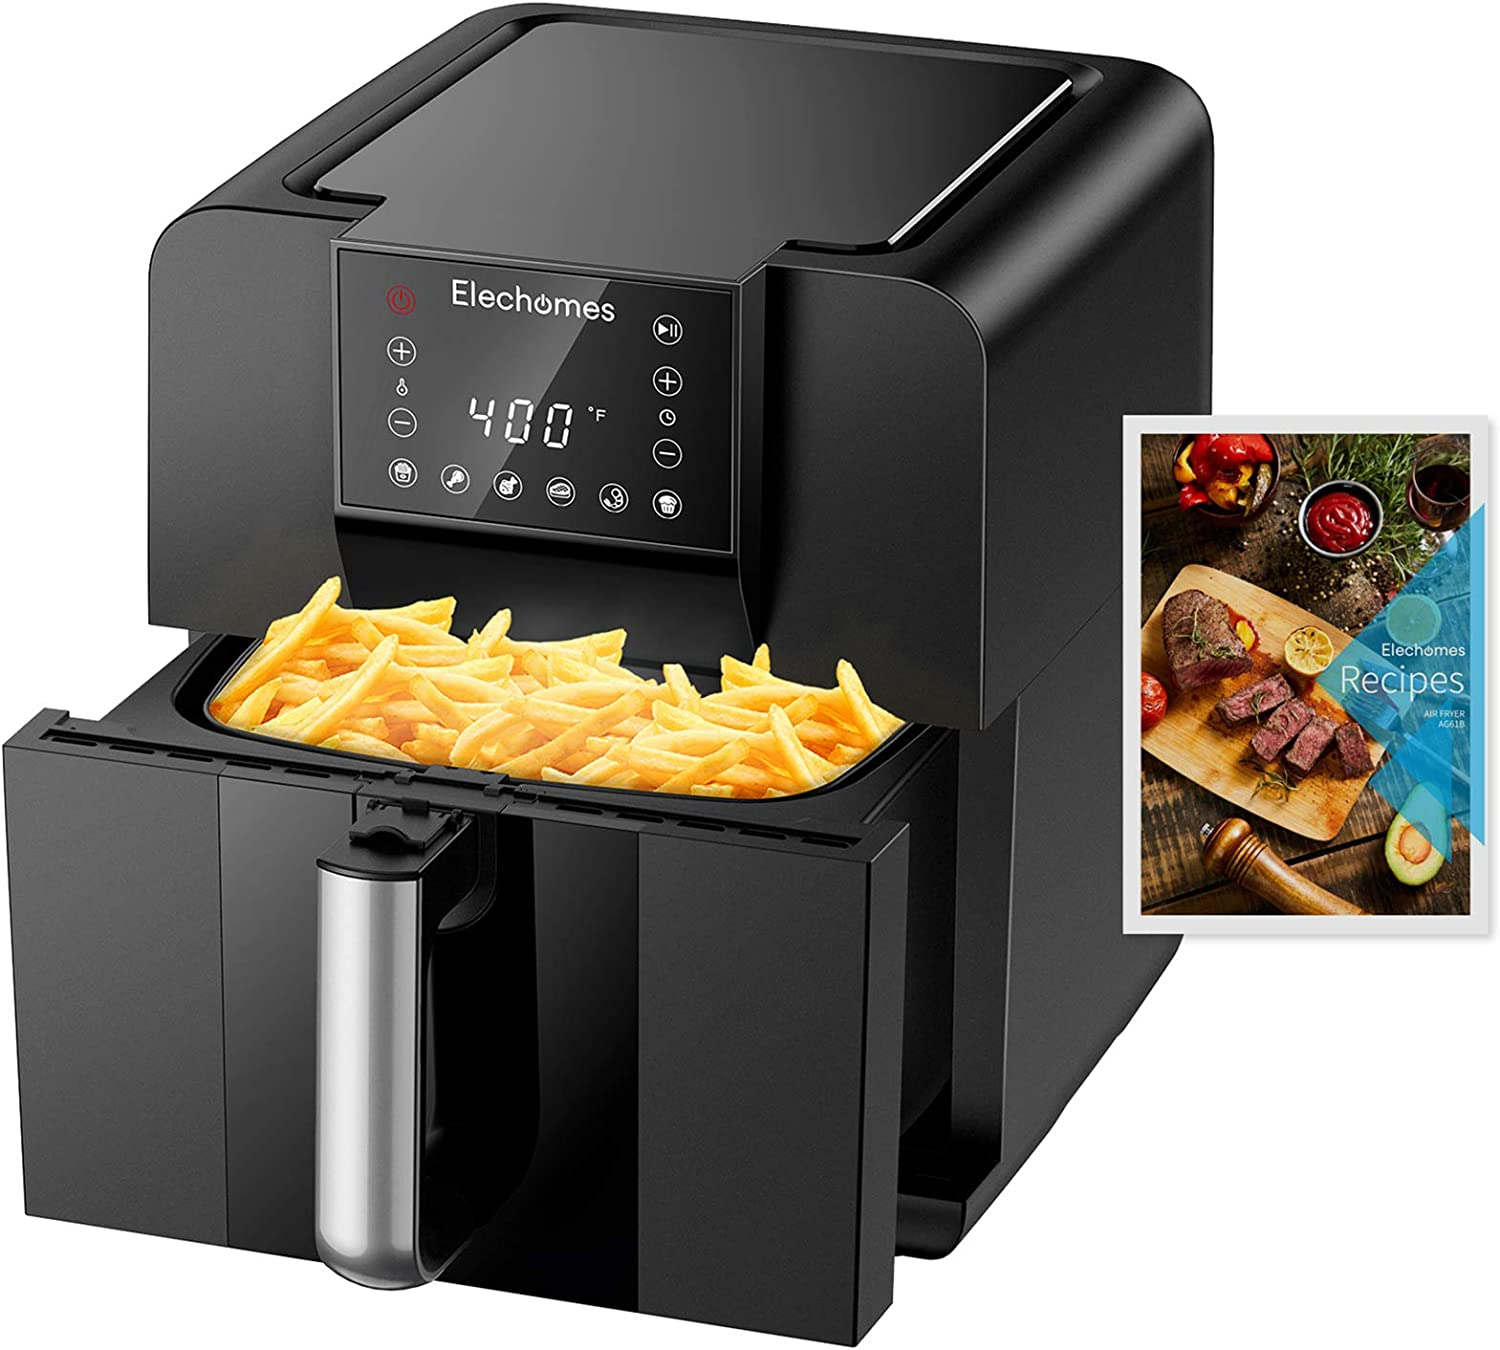 Check out 55 Best Air Fryers You Can Get On Amazon For Home Frying at https://diyprojects.com/air-fryer-amazon/